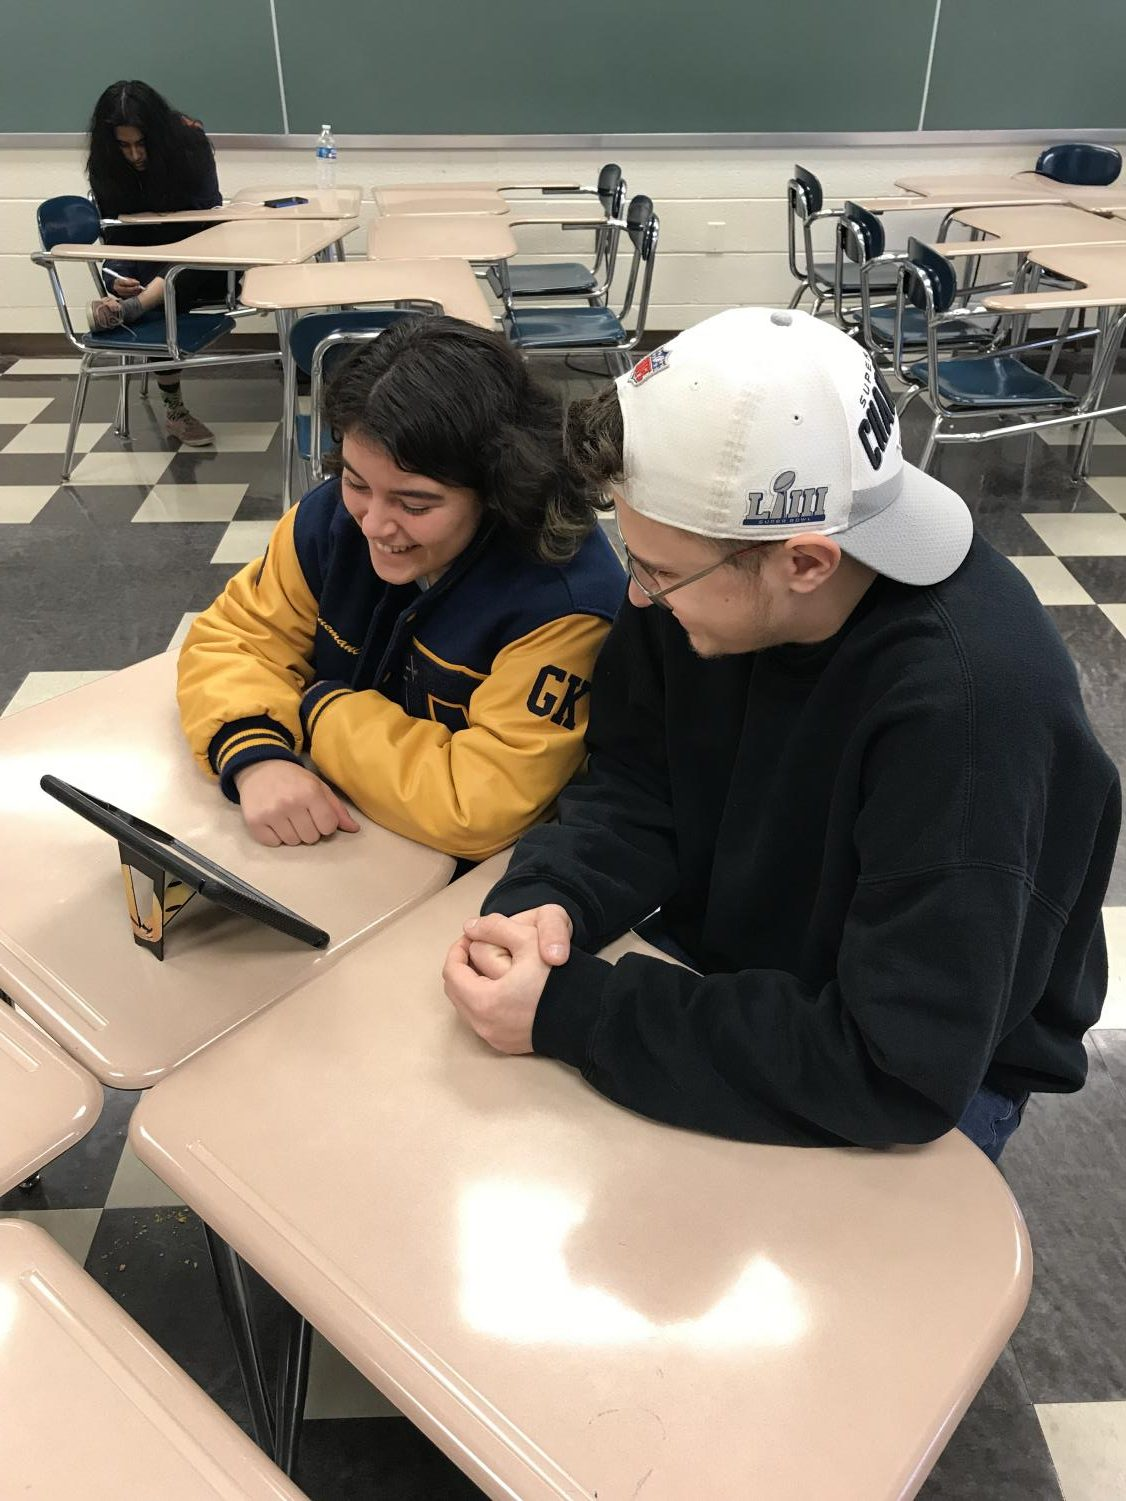 Senior Shea Cinquemani (left) works with Junior Zeke Stettler (right) as part of the NHS Tutoring Program